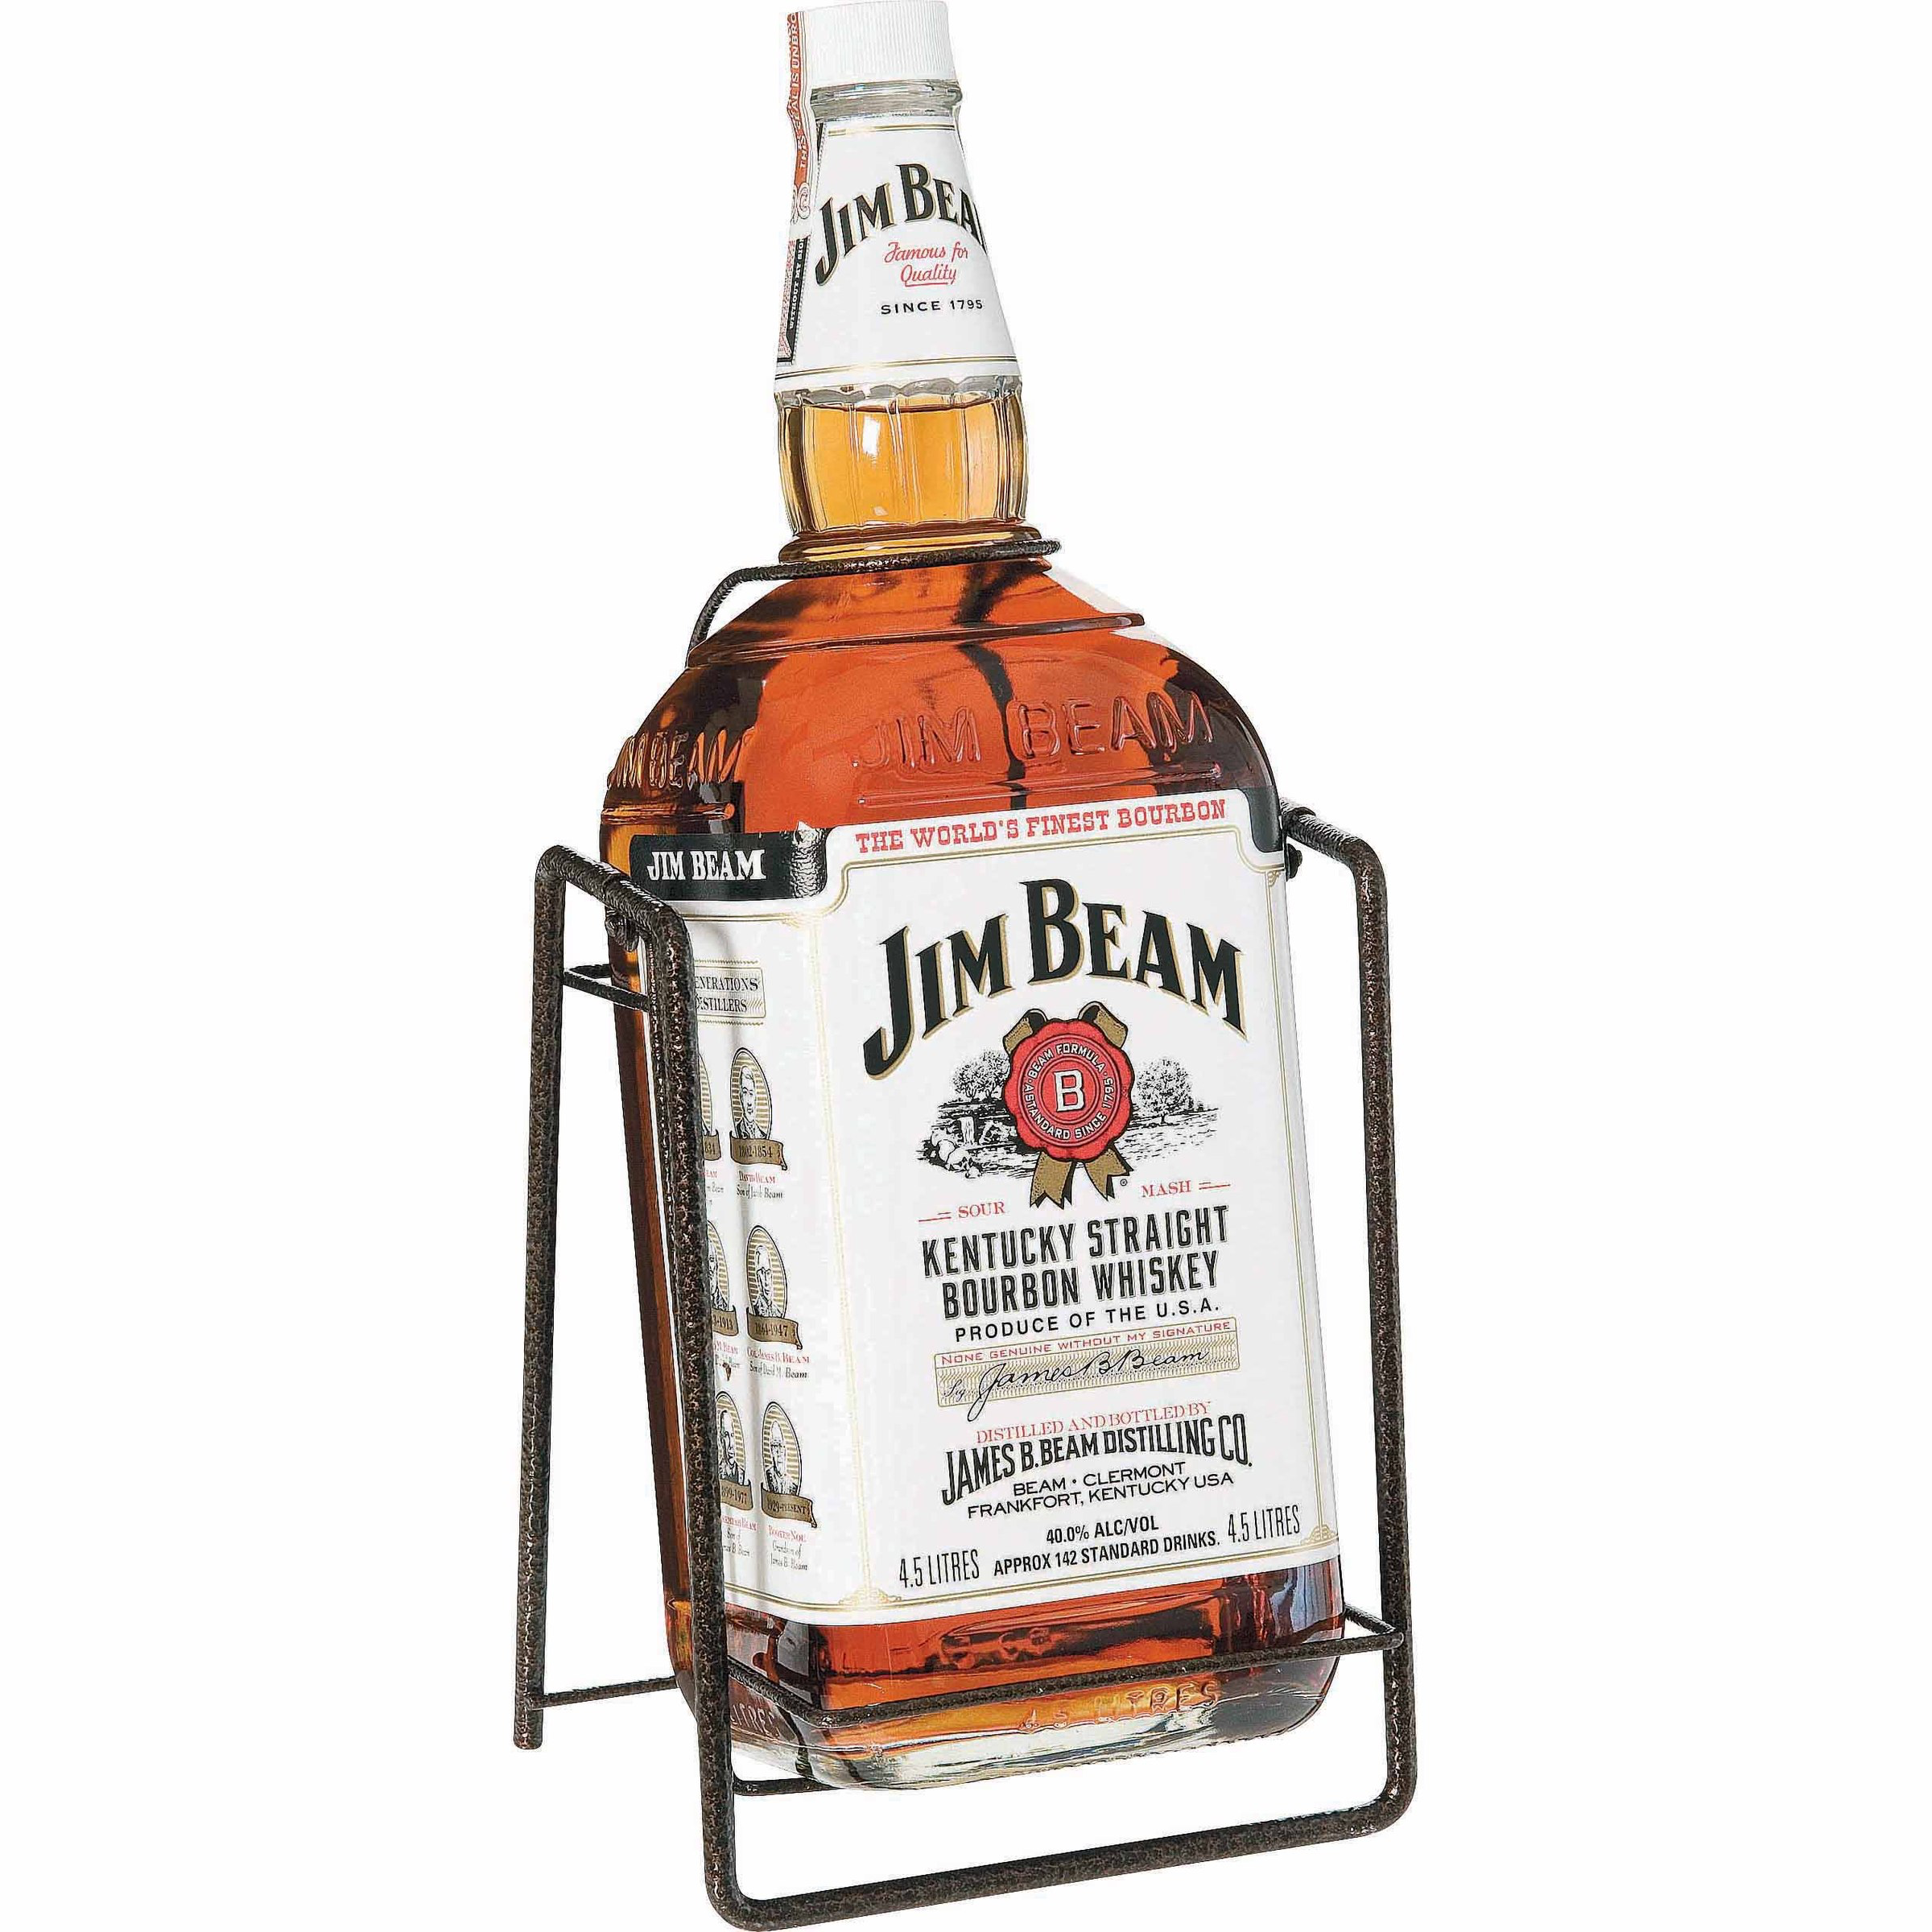 JIM BEAM BOURBON WHITE CRADLE